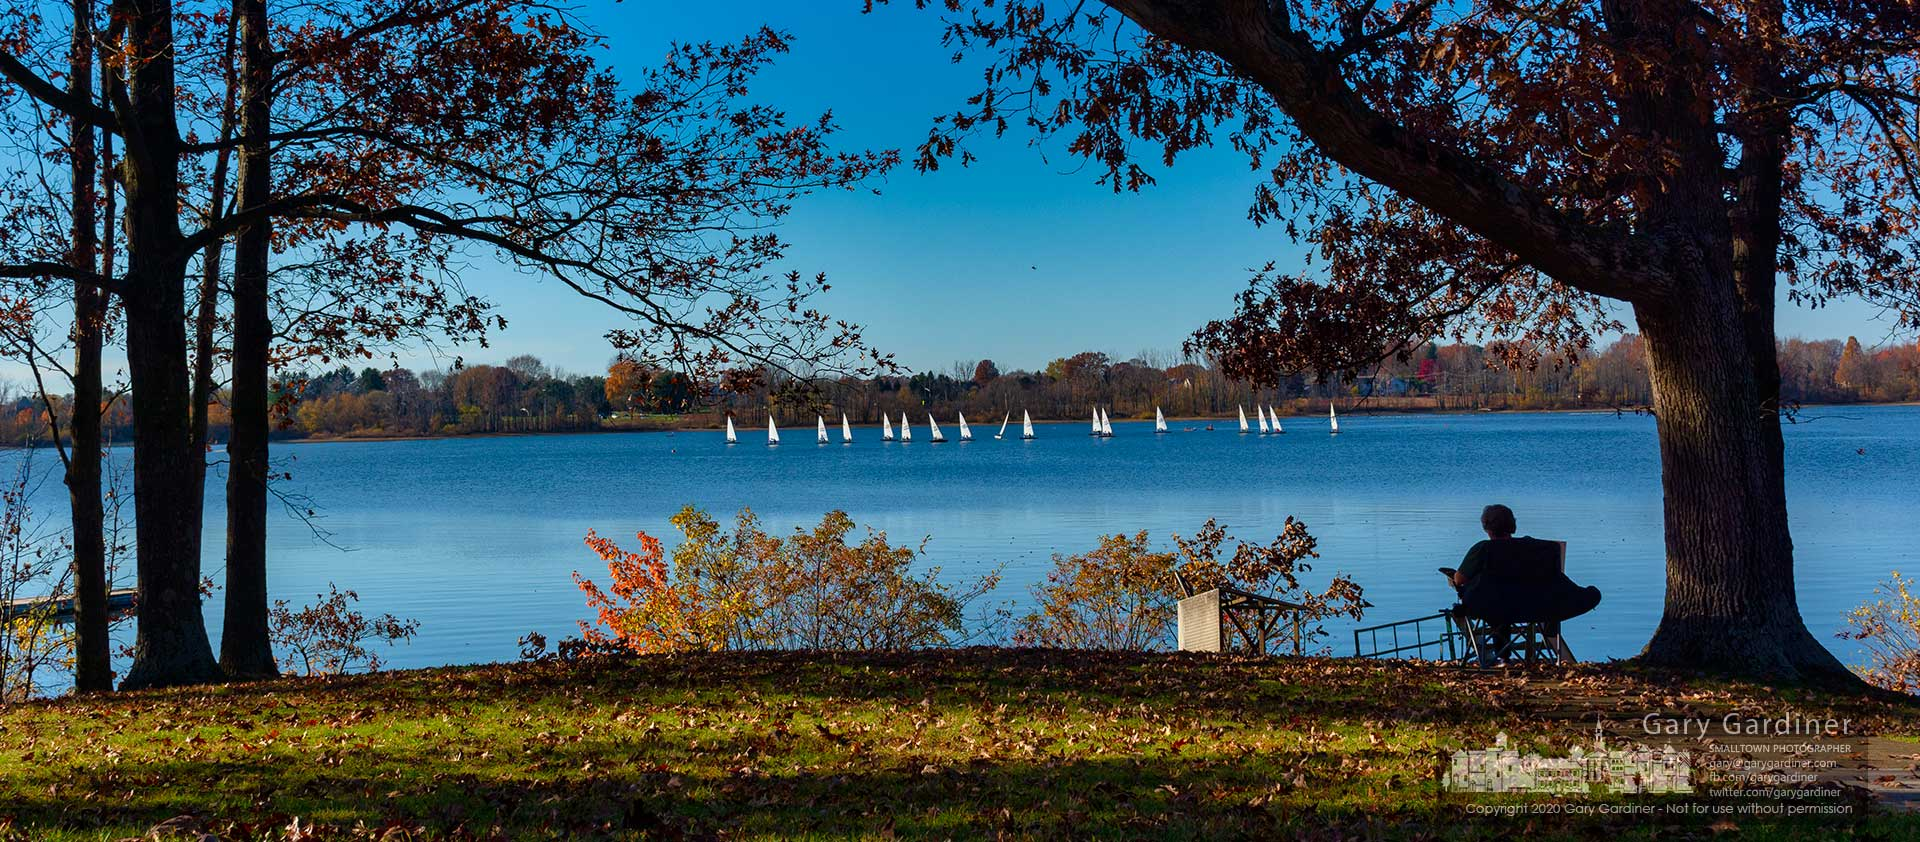 A woman watches as sailors navigate their way around buoys marking their course for a Sunday afternoon of racing and lessons on Hoover Reservoir. My Final Photo for Nov. 8, 2020.